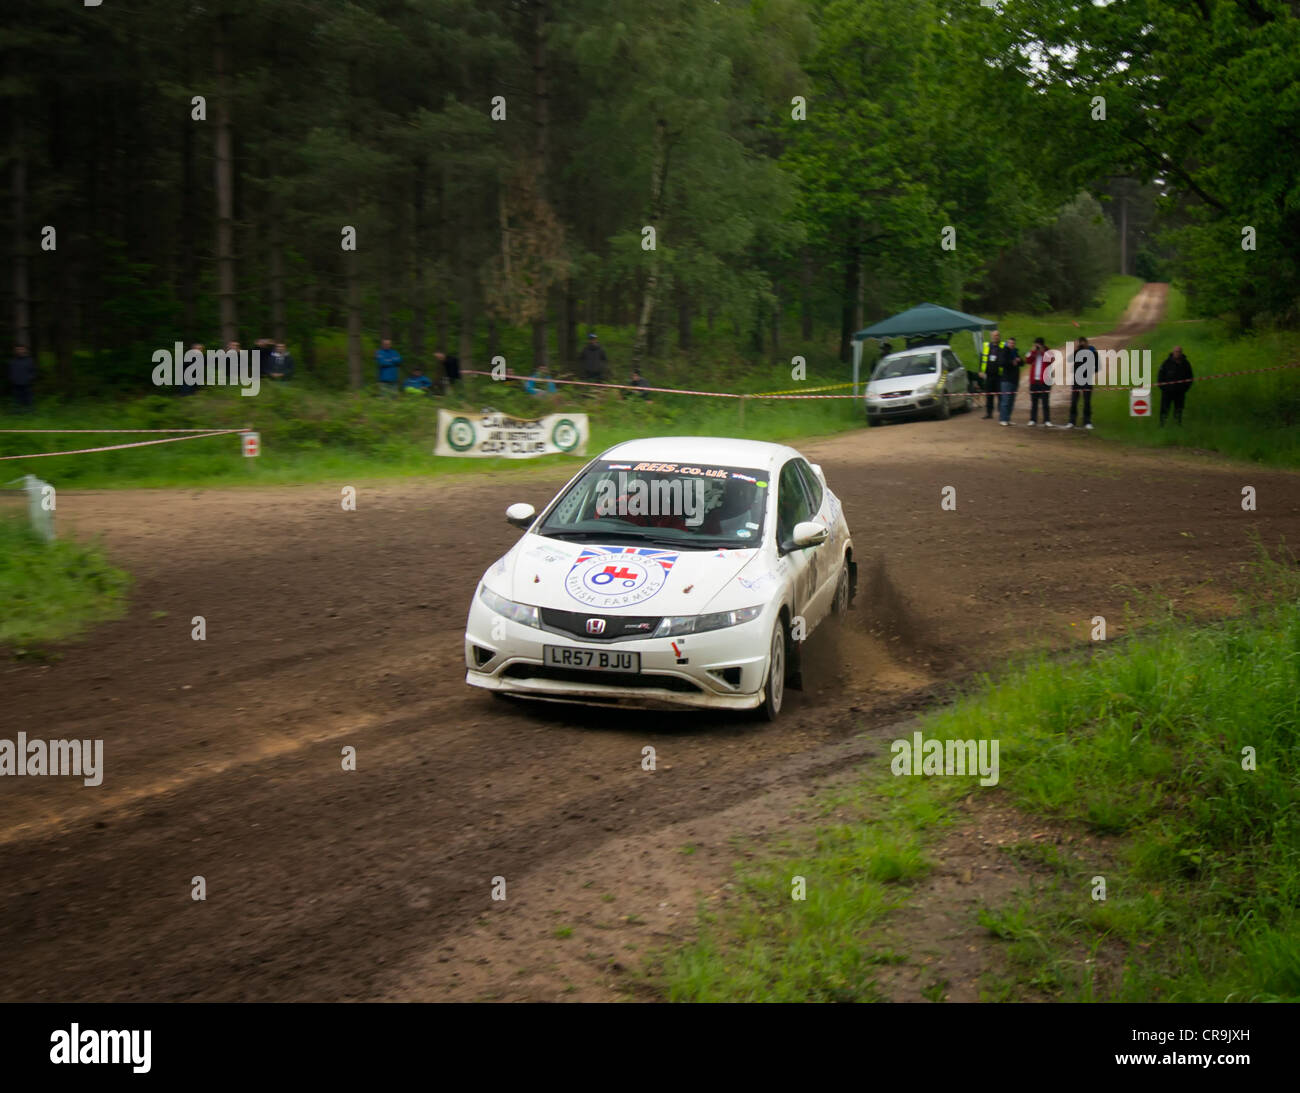 Rainworth Skoda: Skoda Rally Car Stock Photos & Skoda Rally Car Stock